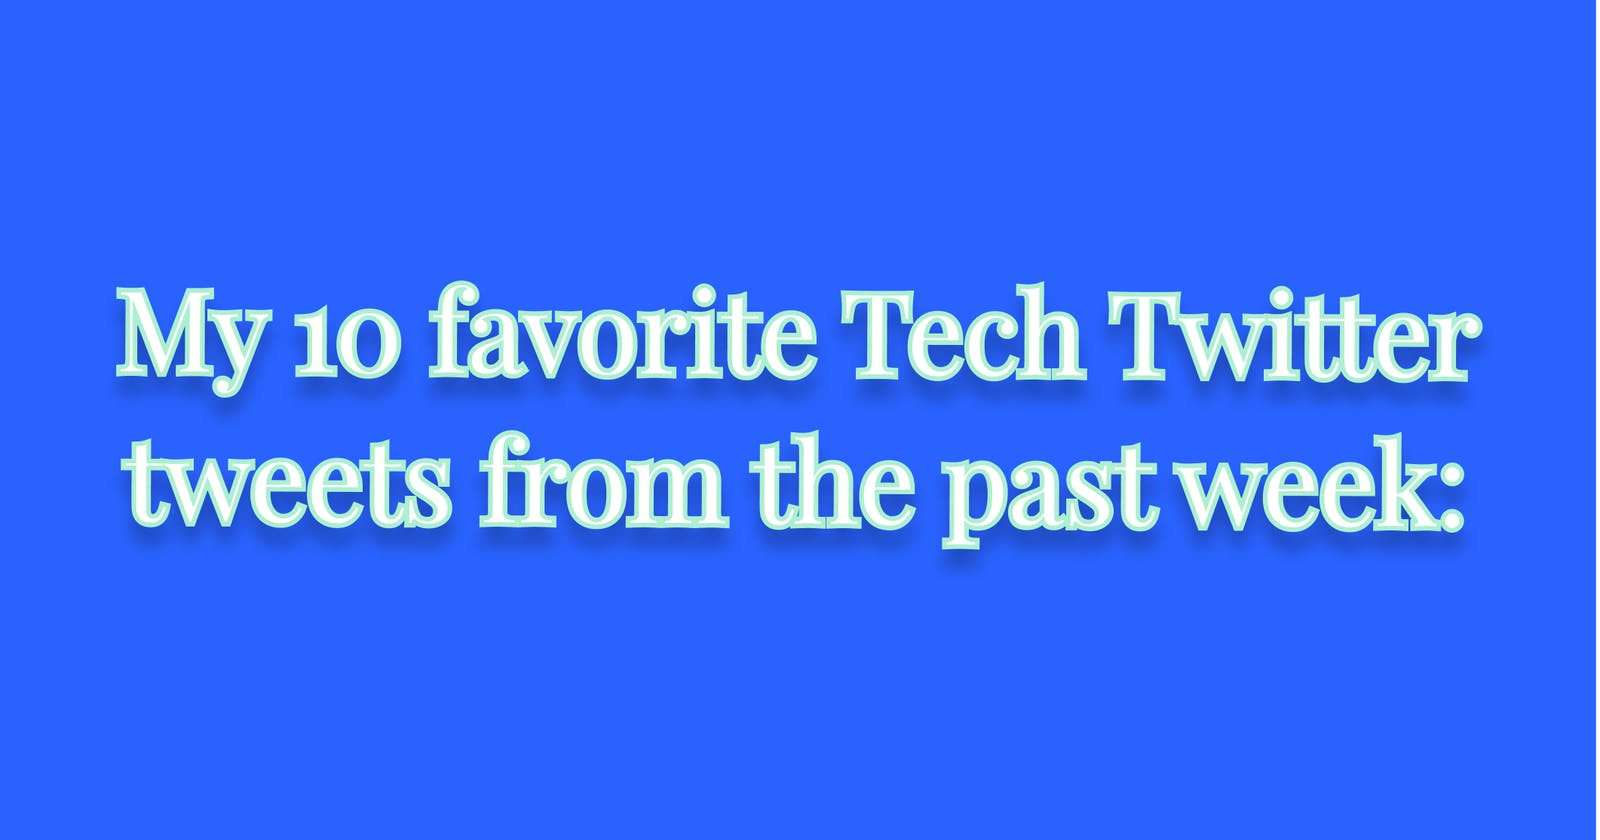 Free Full Stack program, Unit testing in JavaScript, web3 developer roadmap, and more  My 10 favorite Tech Twitter tweets from the past week: